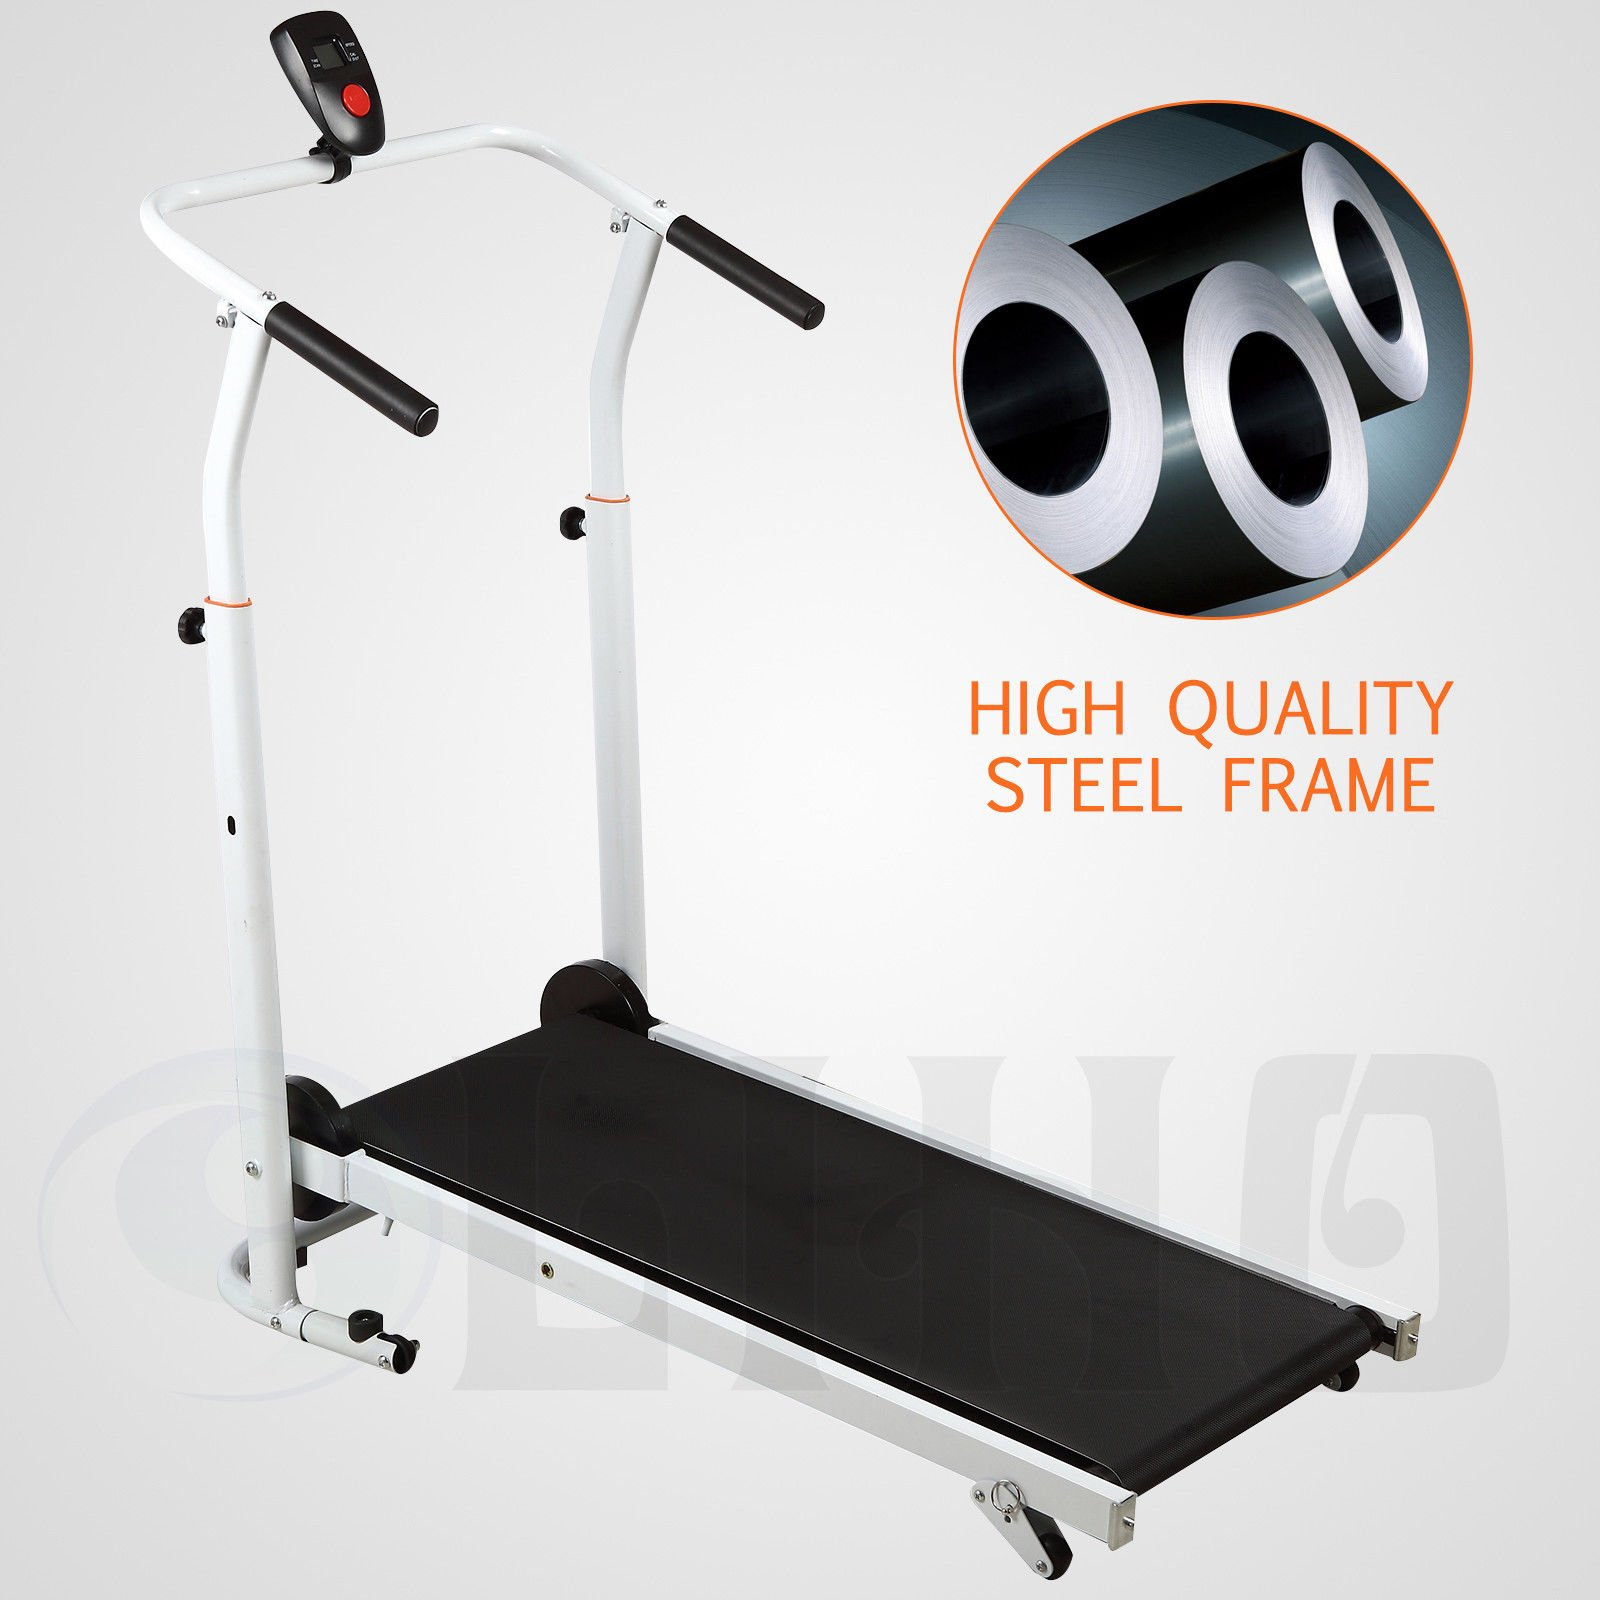 Senrob Folding Manual Treadmill with adjustable Incline Compact&Portable for Home,office by Senrob